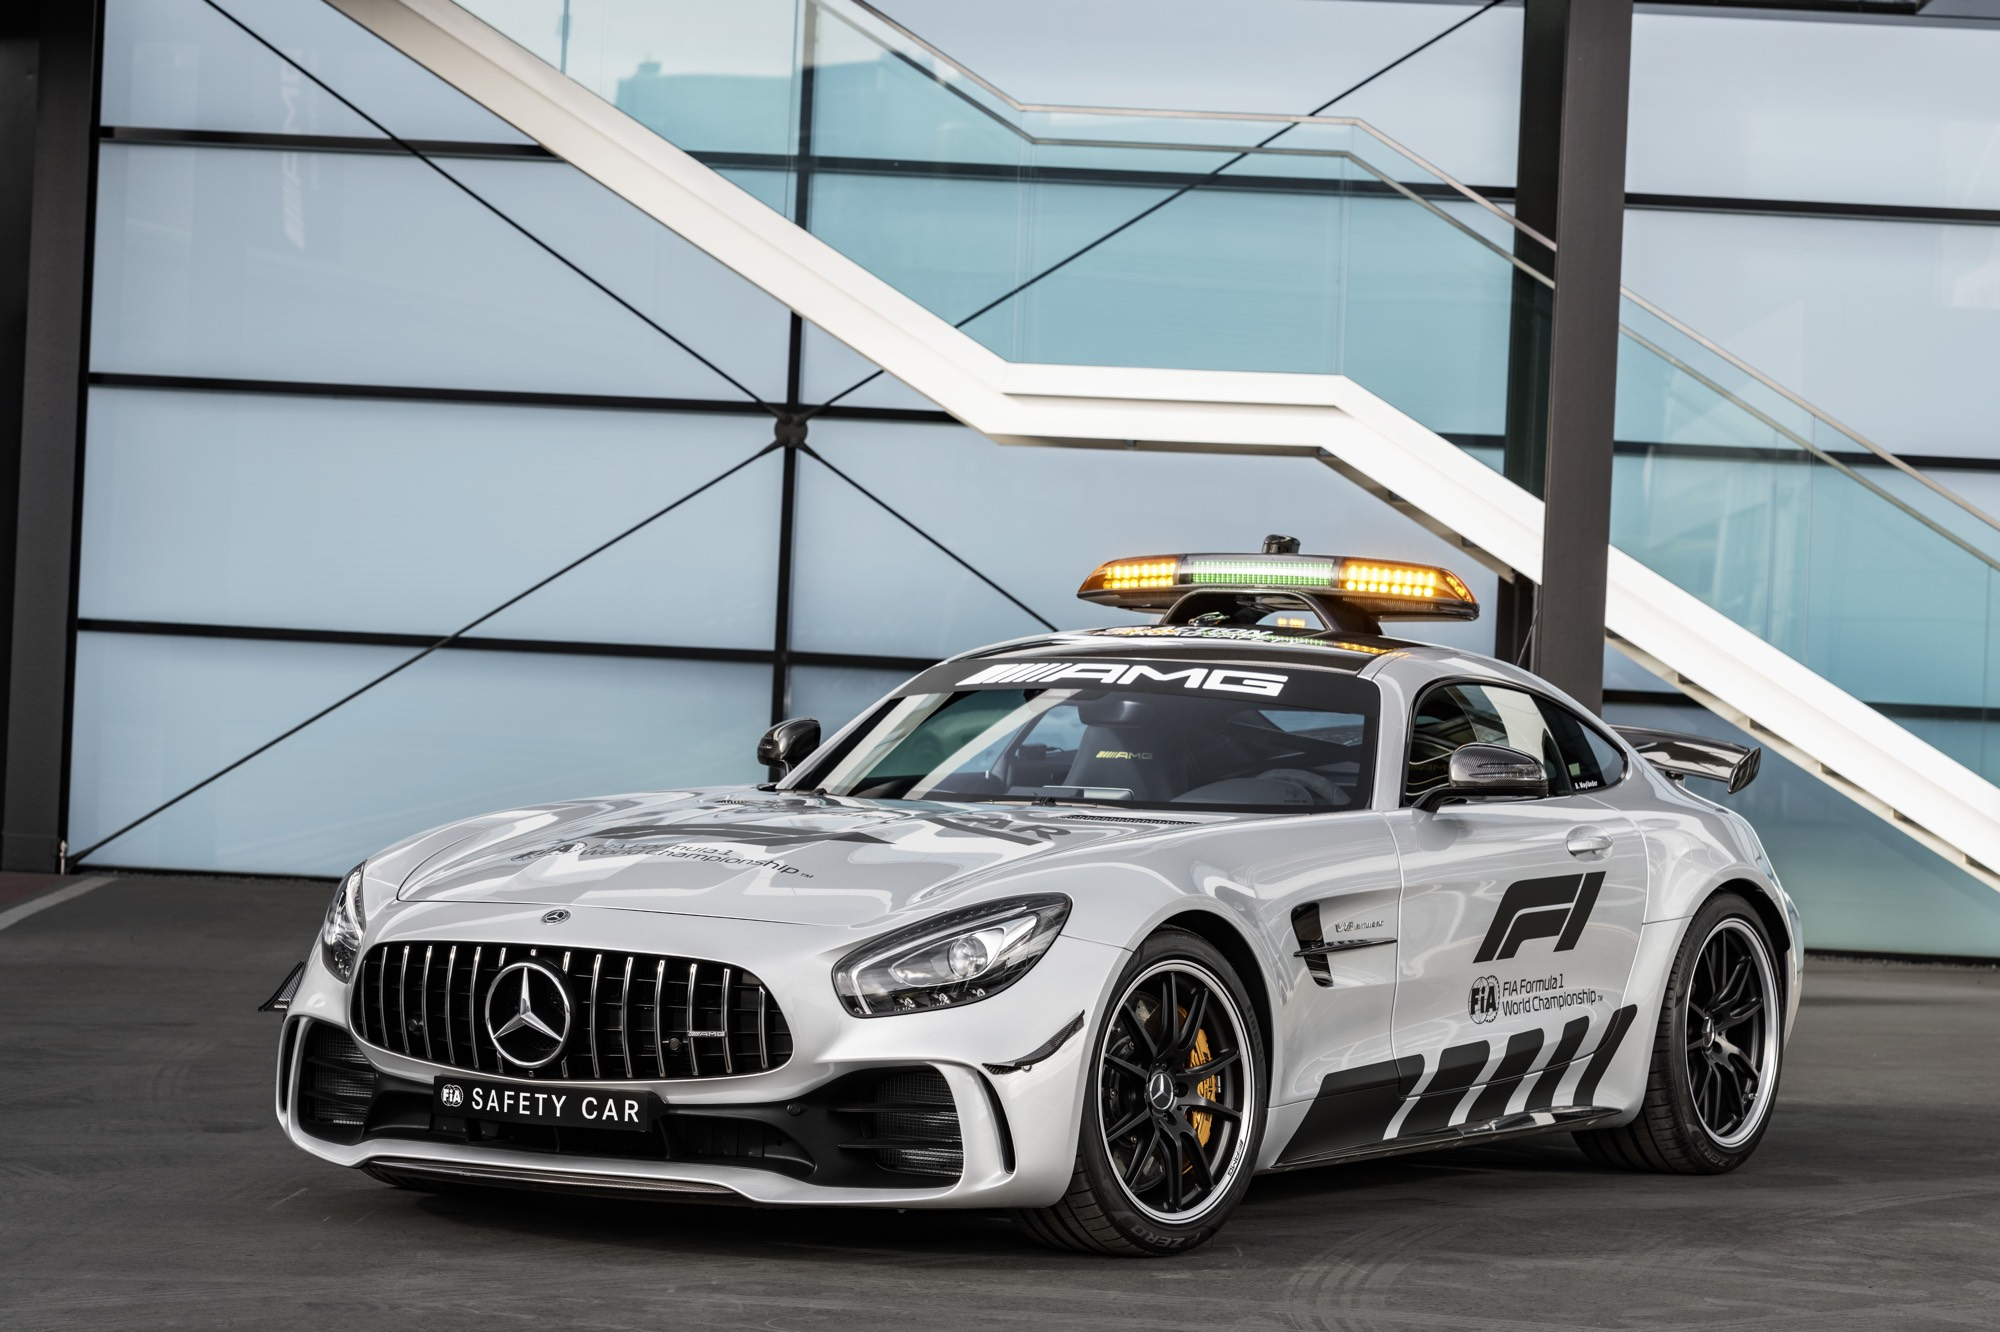 mercedes amg gt r offizielles safety car der formel 1 saison 2018 rad. Black Bedroom Furniture Sets. Home Design Ideas